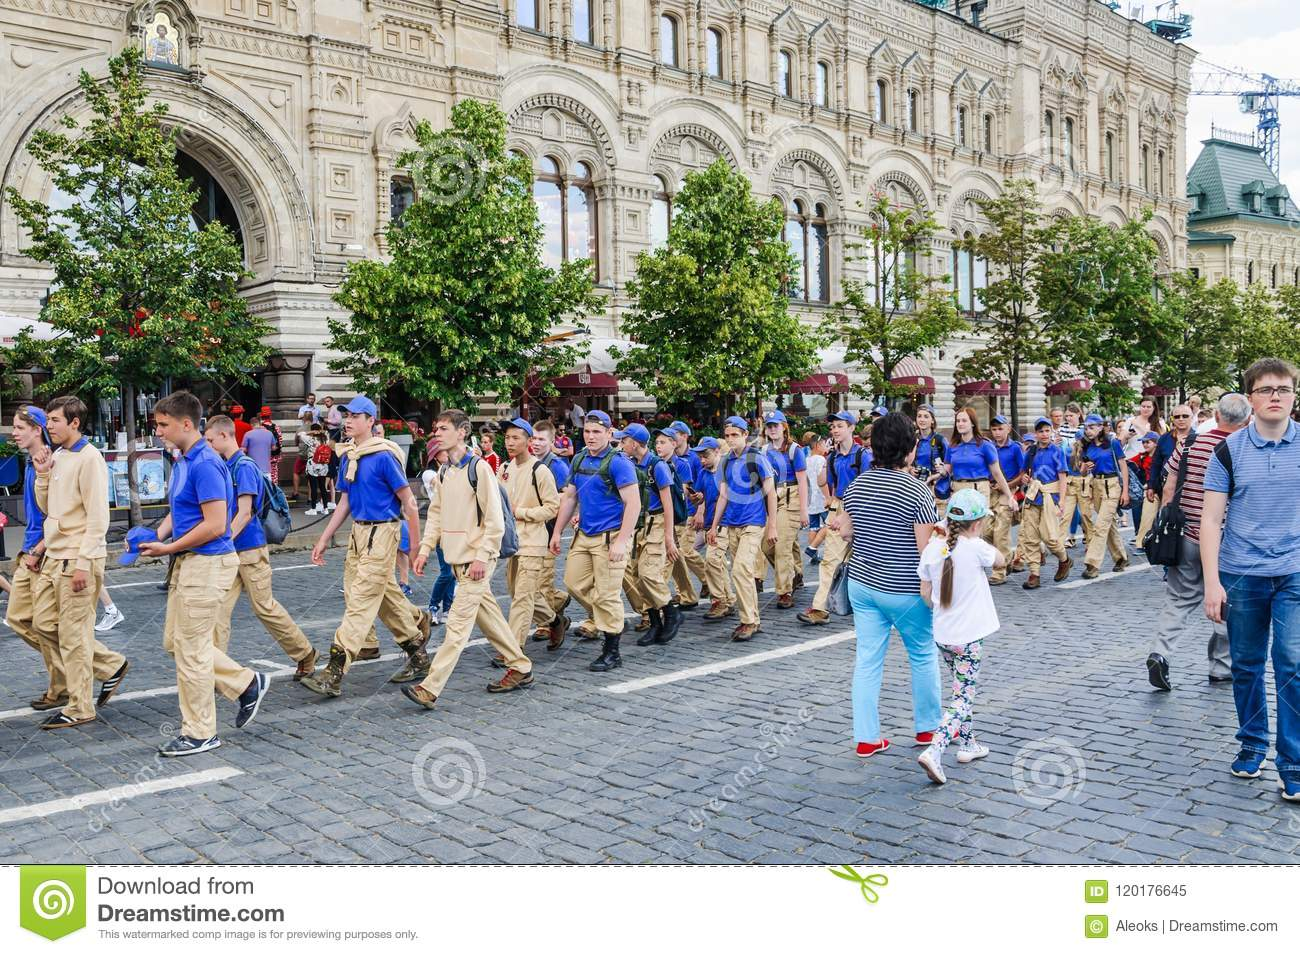 A group of teenagers-tourists in the uniform of the summer camp are going in pairs on the Red square